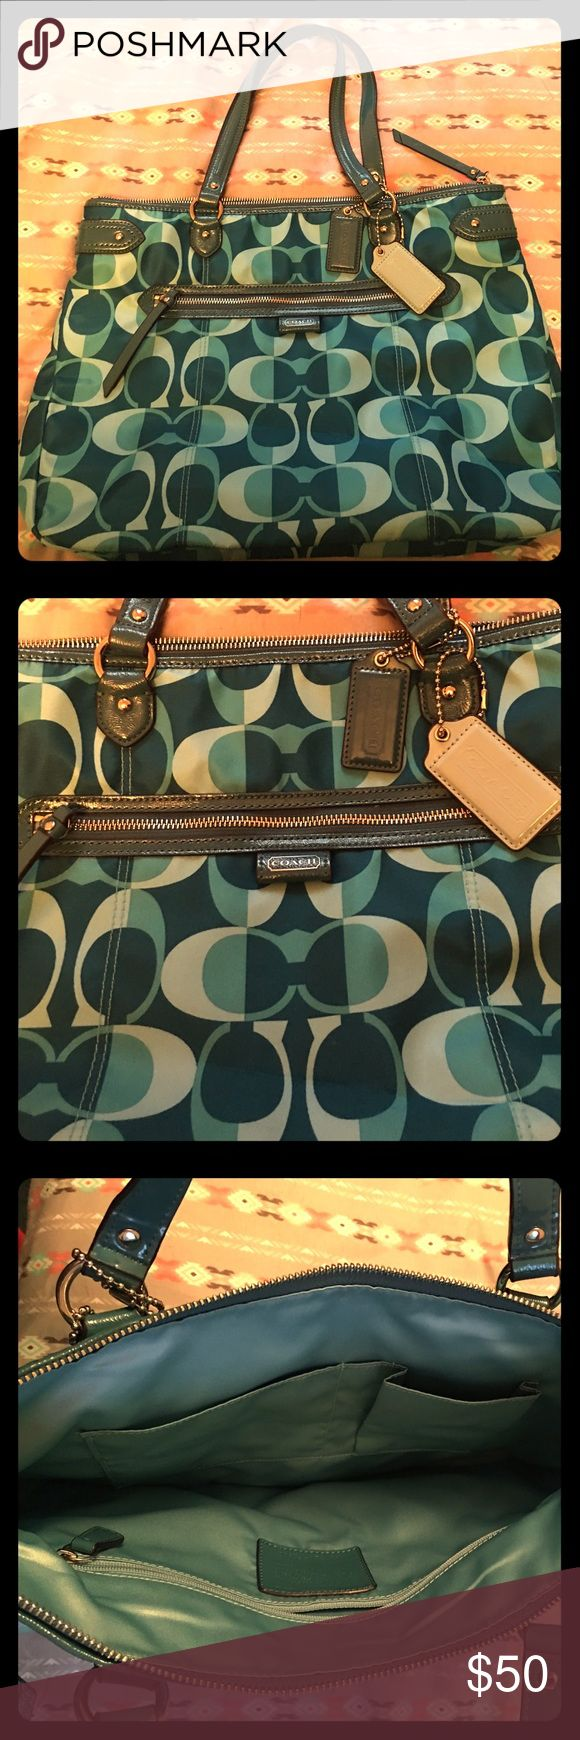 Coach Tote Bag Adorable teal Coach Tote Bag. Like new - only used 1 - 2 times. Coach Bags Totes